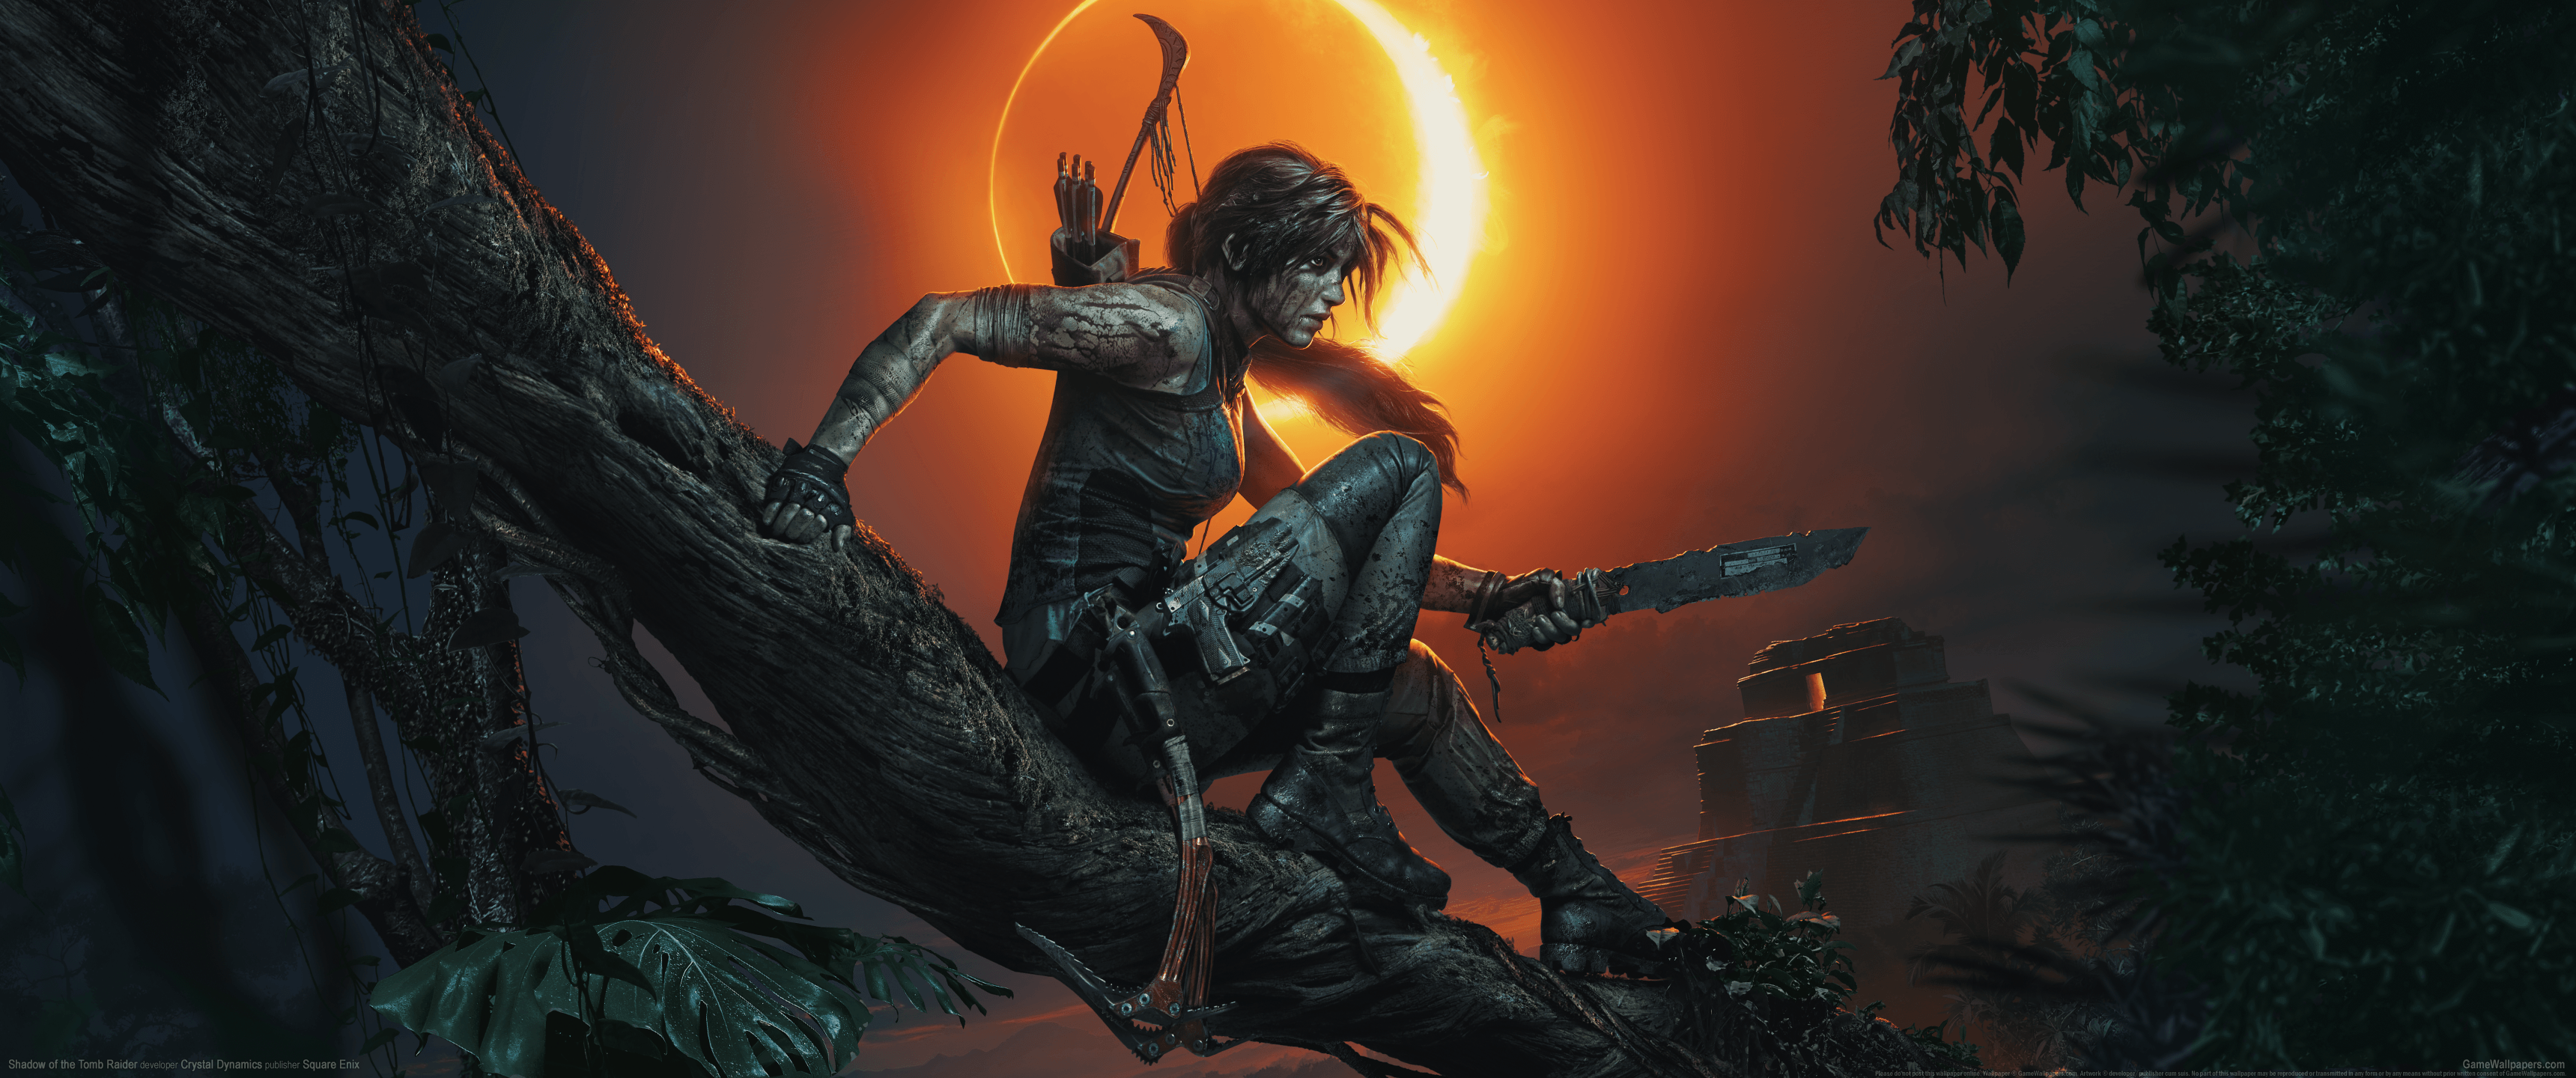 Shadow Of The Tomb Raider Wallpapers - Wallpaper Cave